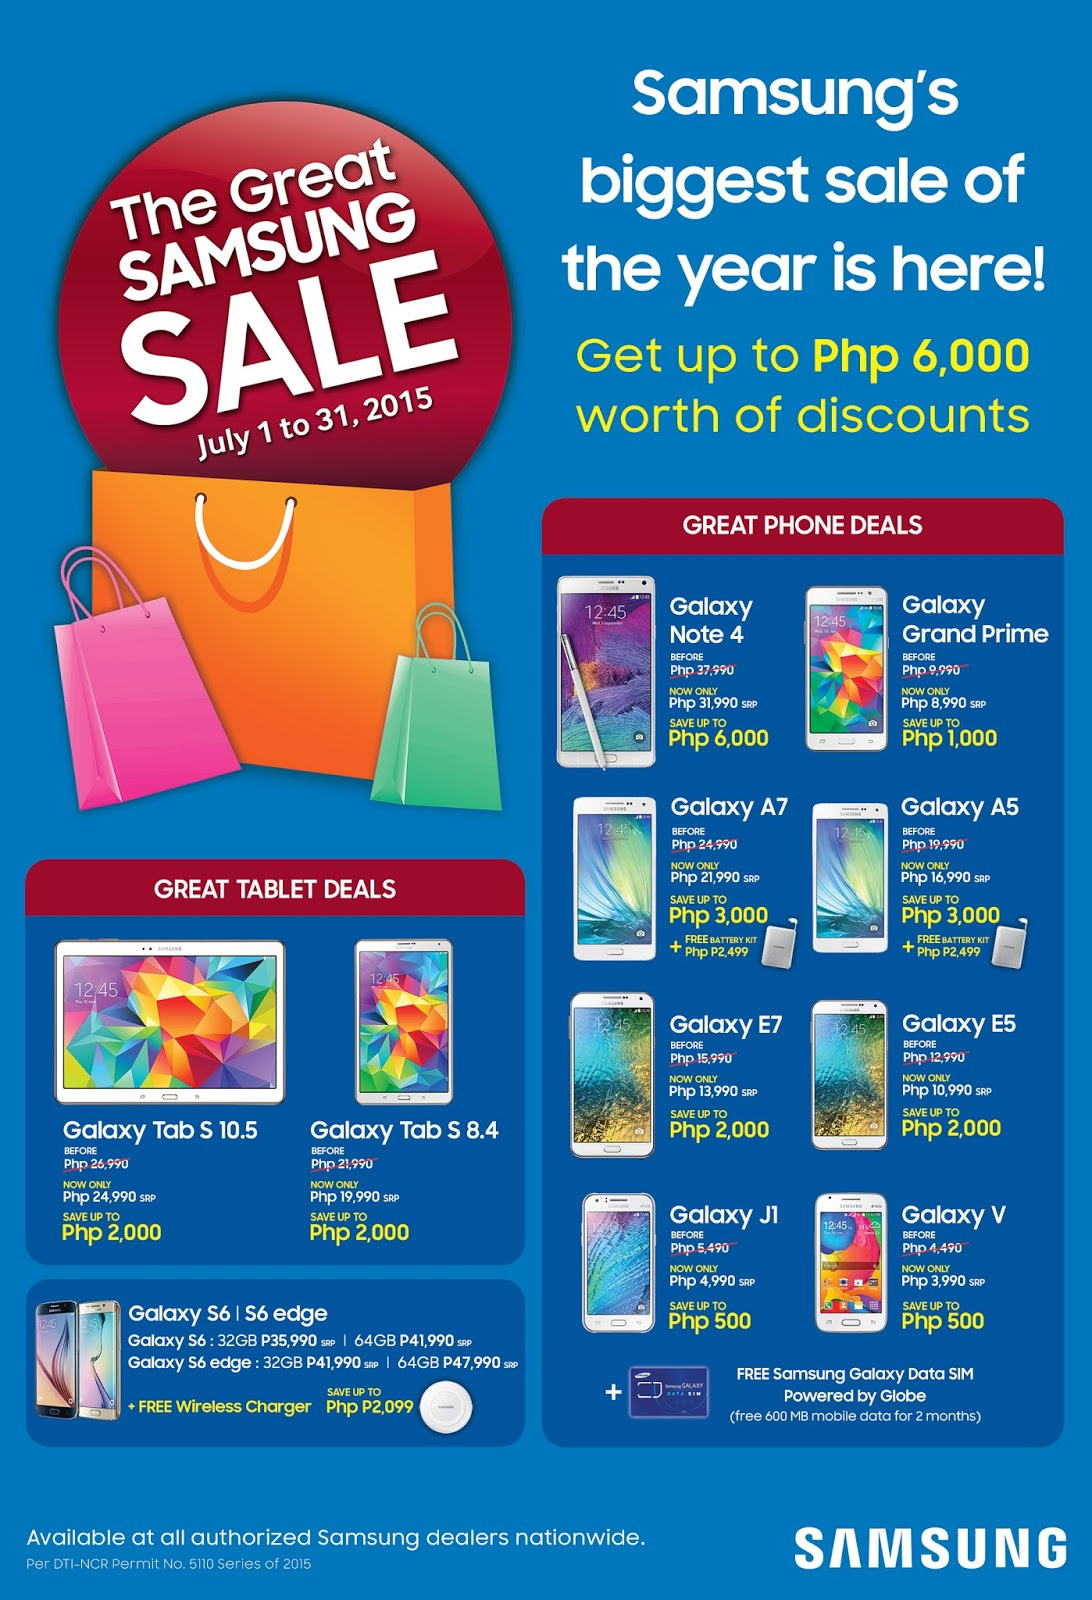 2015 Great Samsung Sale for July